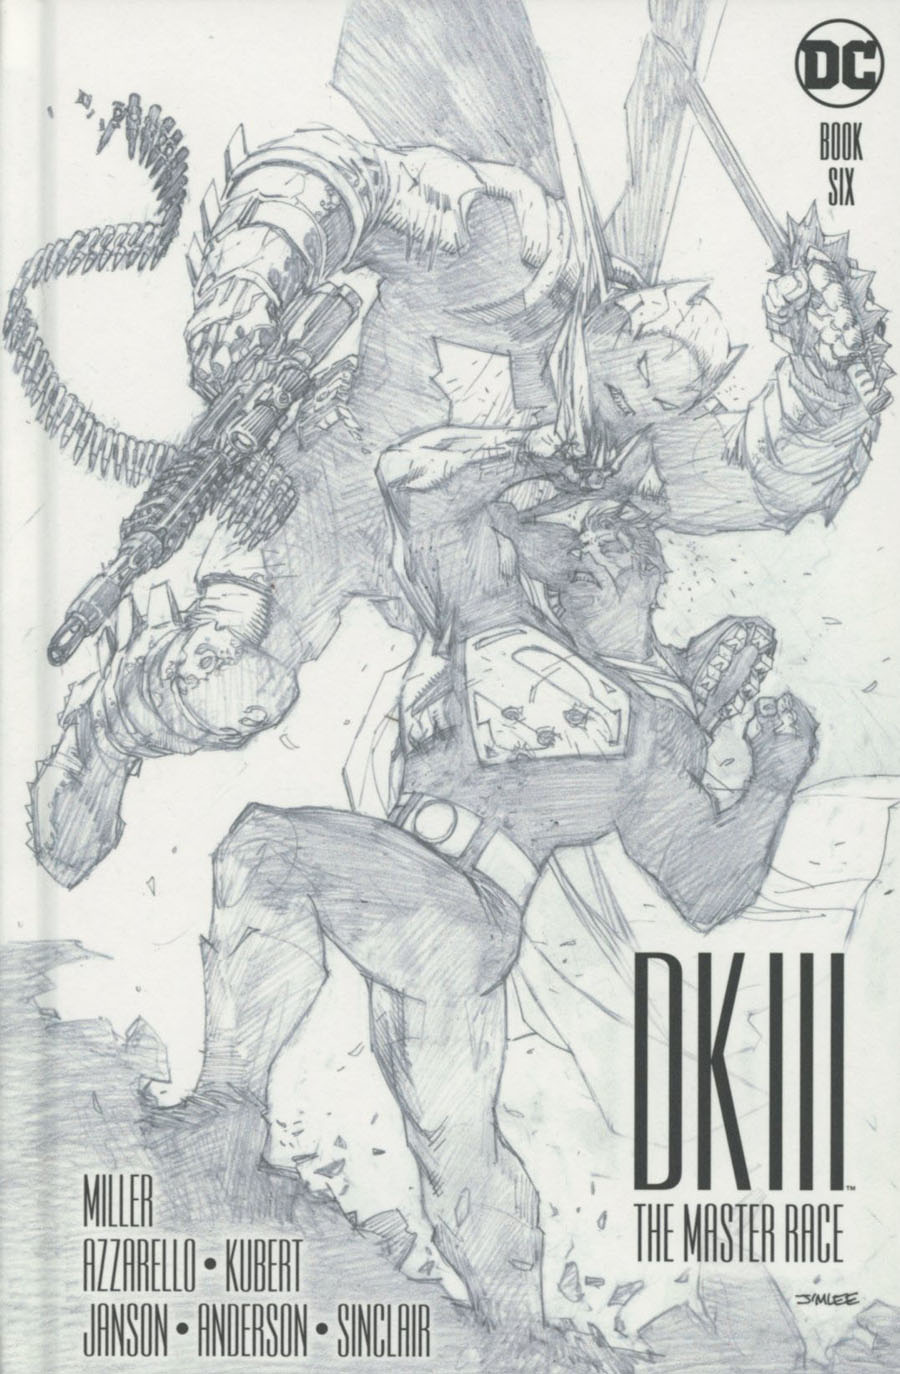 Dark Knight III The Master Race #6 Cover D Collectors Edition HC